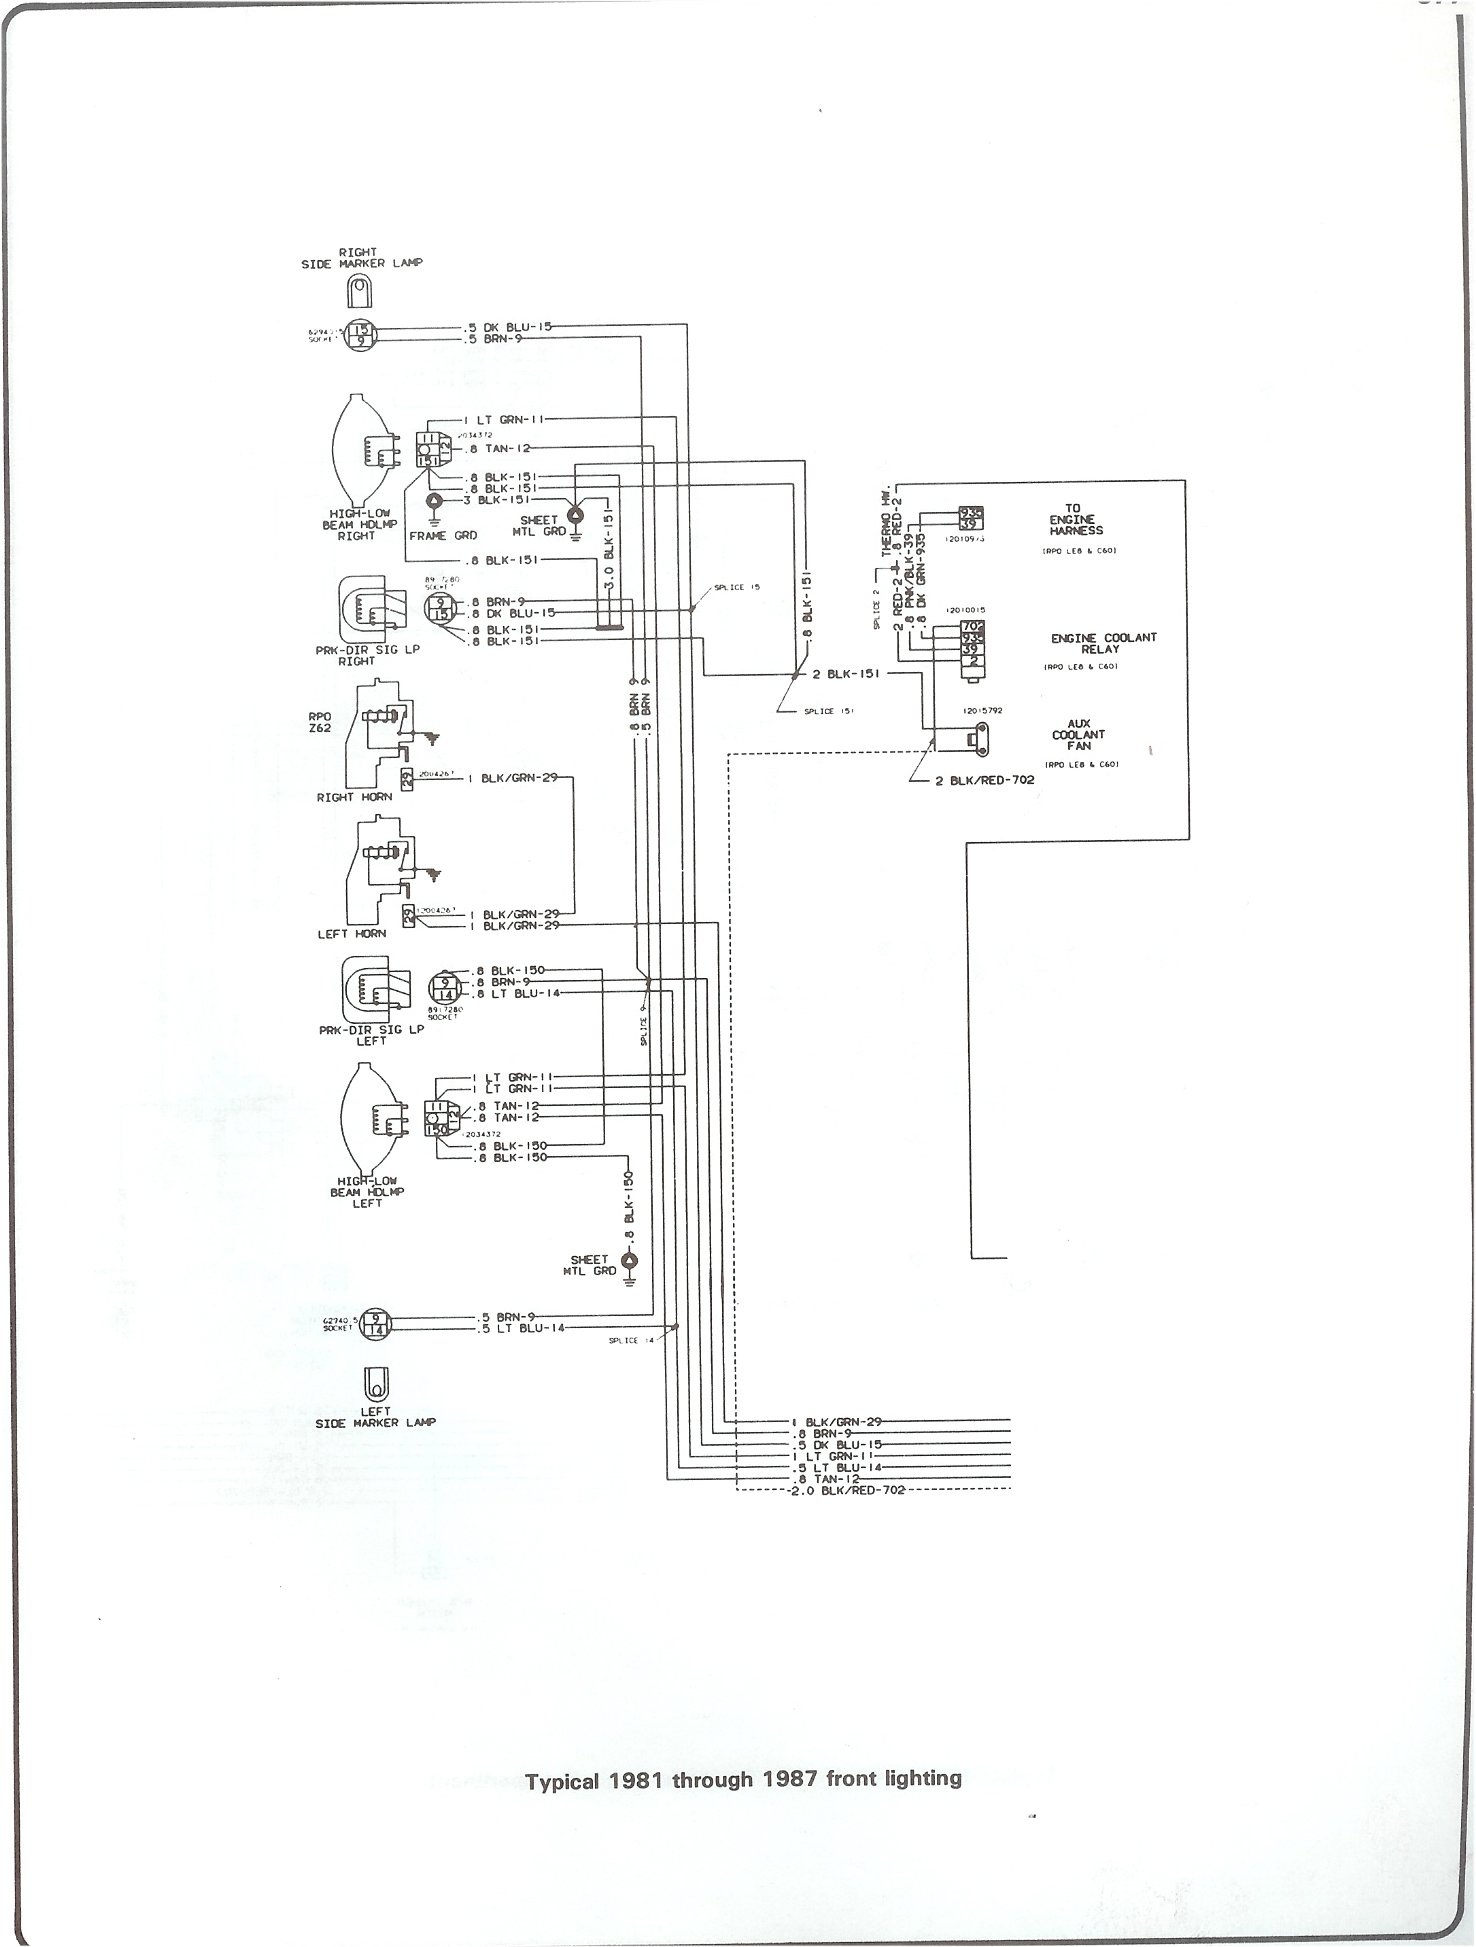 [SCHEMATICS_48IU]  Complete 73-87 Wiring Diagrams | Light Switch Wiring Diagram 1981 C10 |  | 73-87 Chevy Trucks